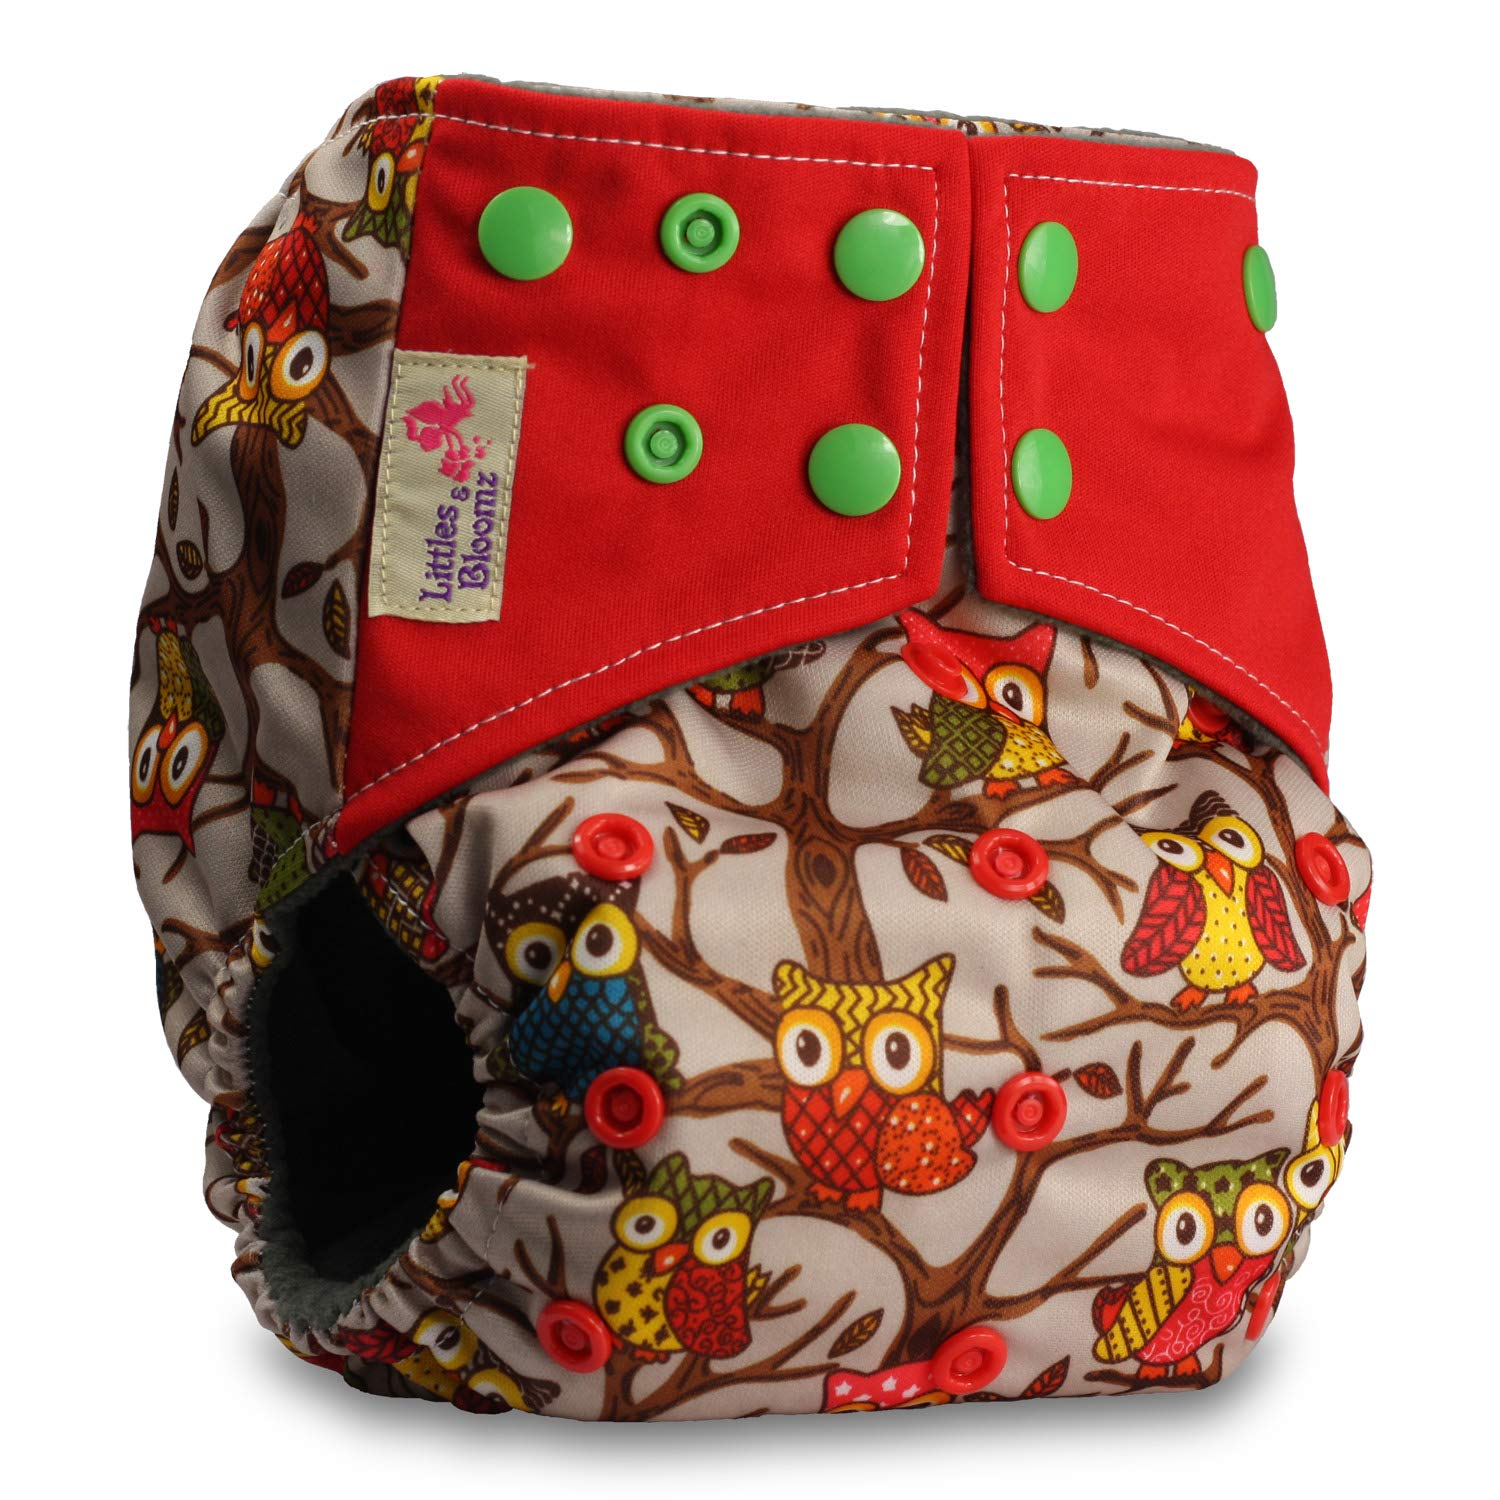 Set of 1 Fastener: Hook-Loop with 2 Bamboo Charcoal Inserts Littles /& Bloomz Pattern 33 Reusable Pocket Cloth Nappy